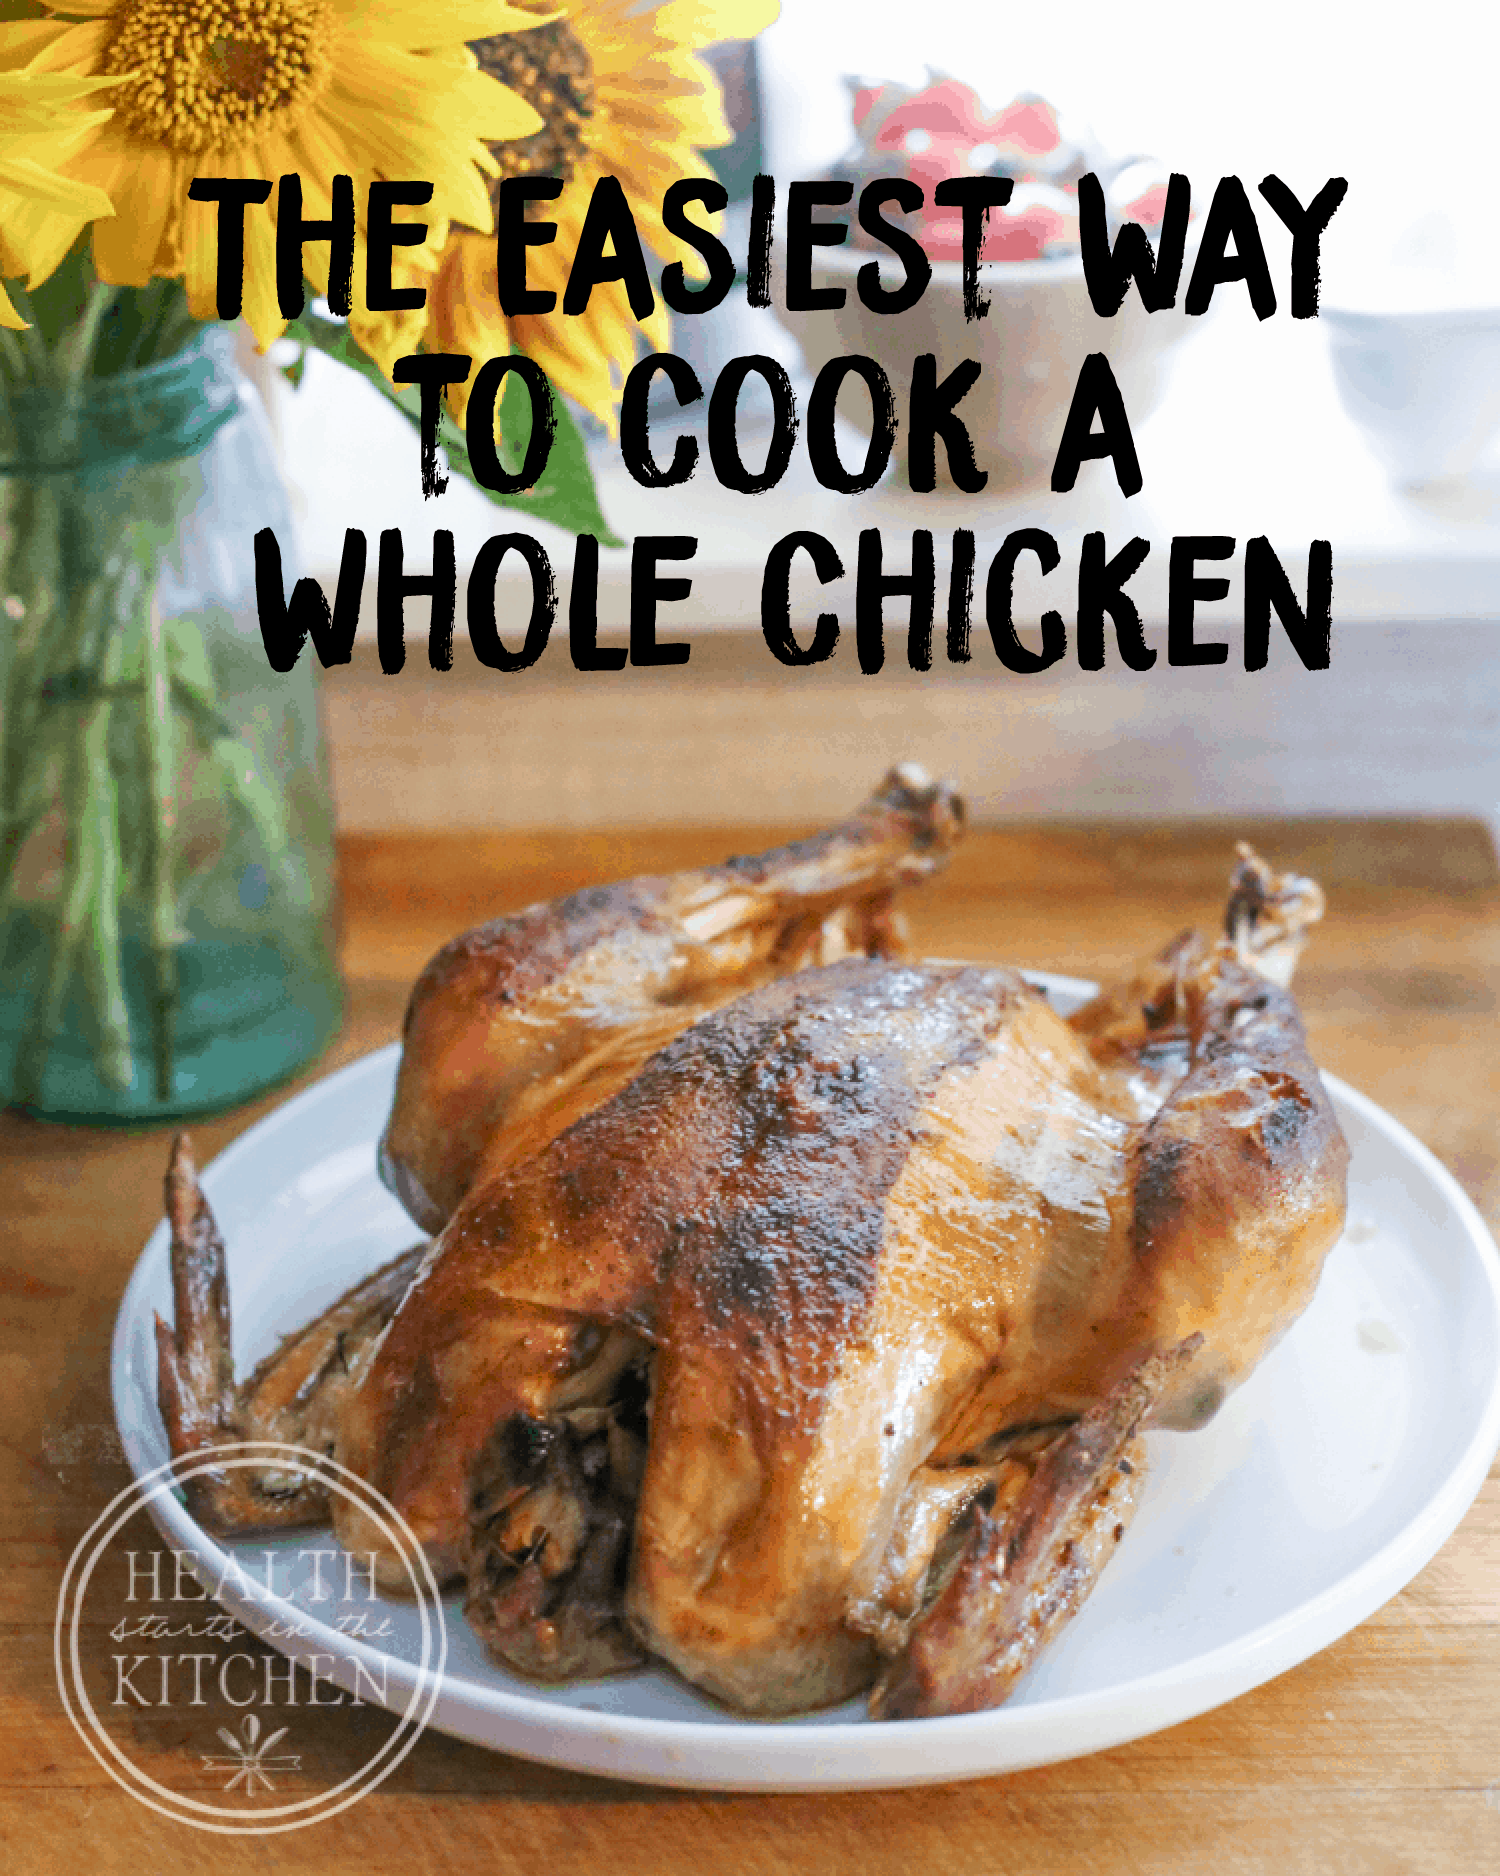 The Easiest Way to Cook a Whole Chicken (That's Healthy & Delicious, too!)